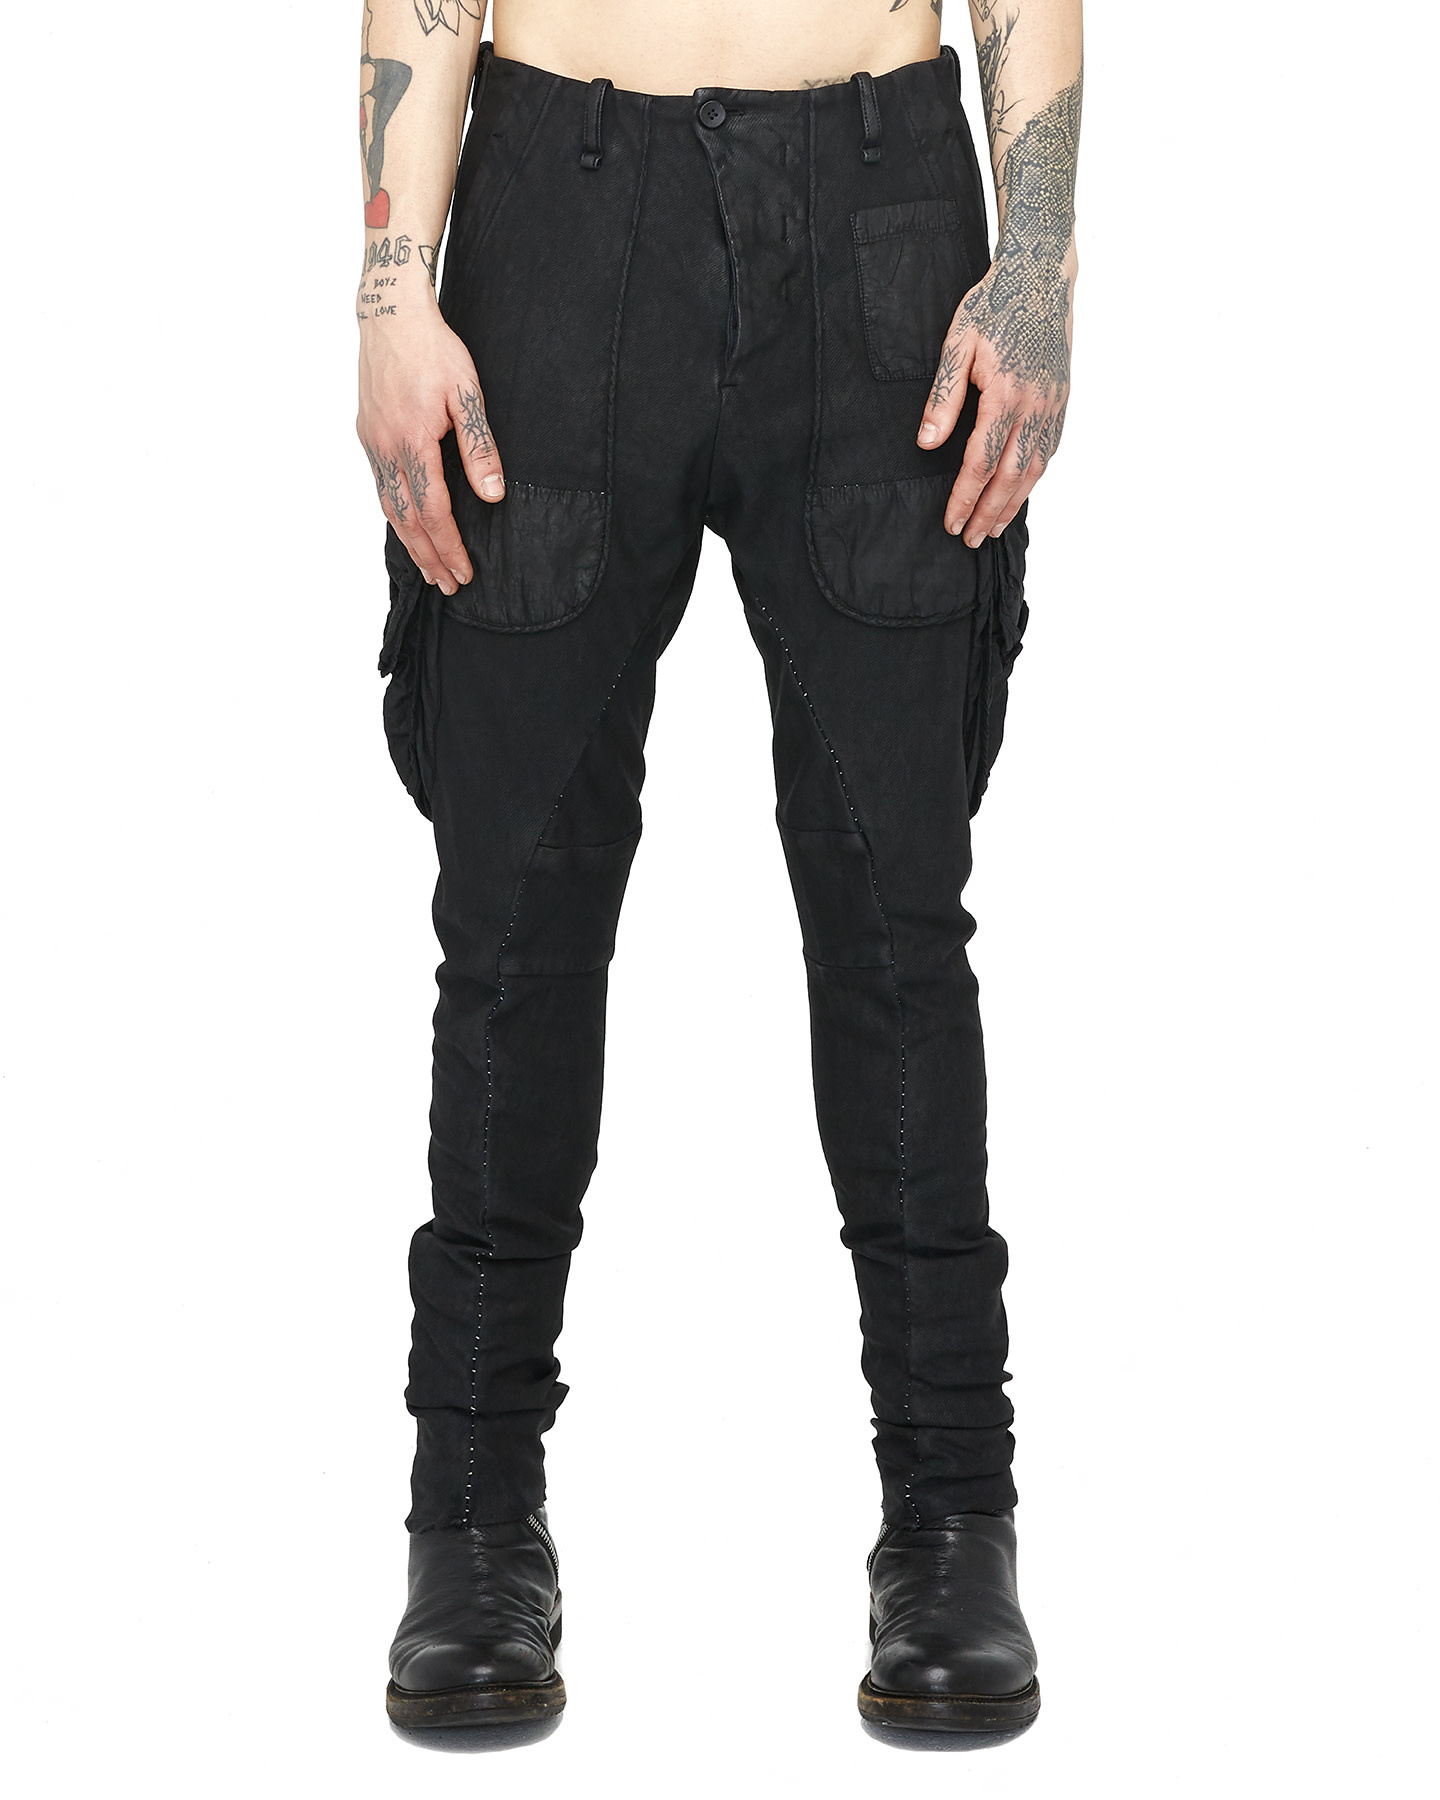 DUAL BATON POCKET PANTS - RESIN